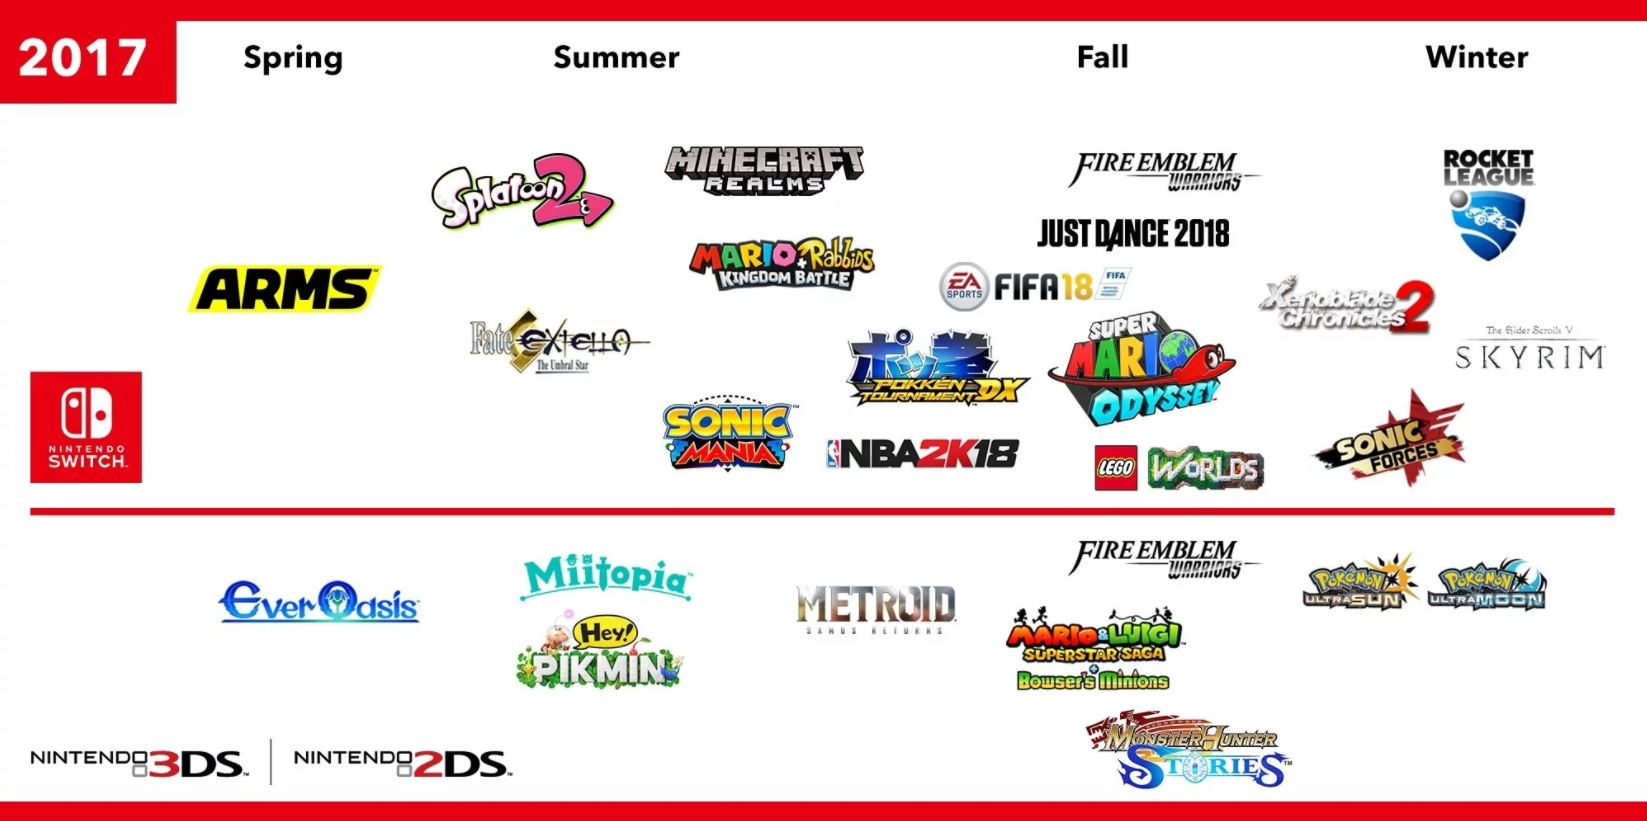 Nintendo Switch release schedule